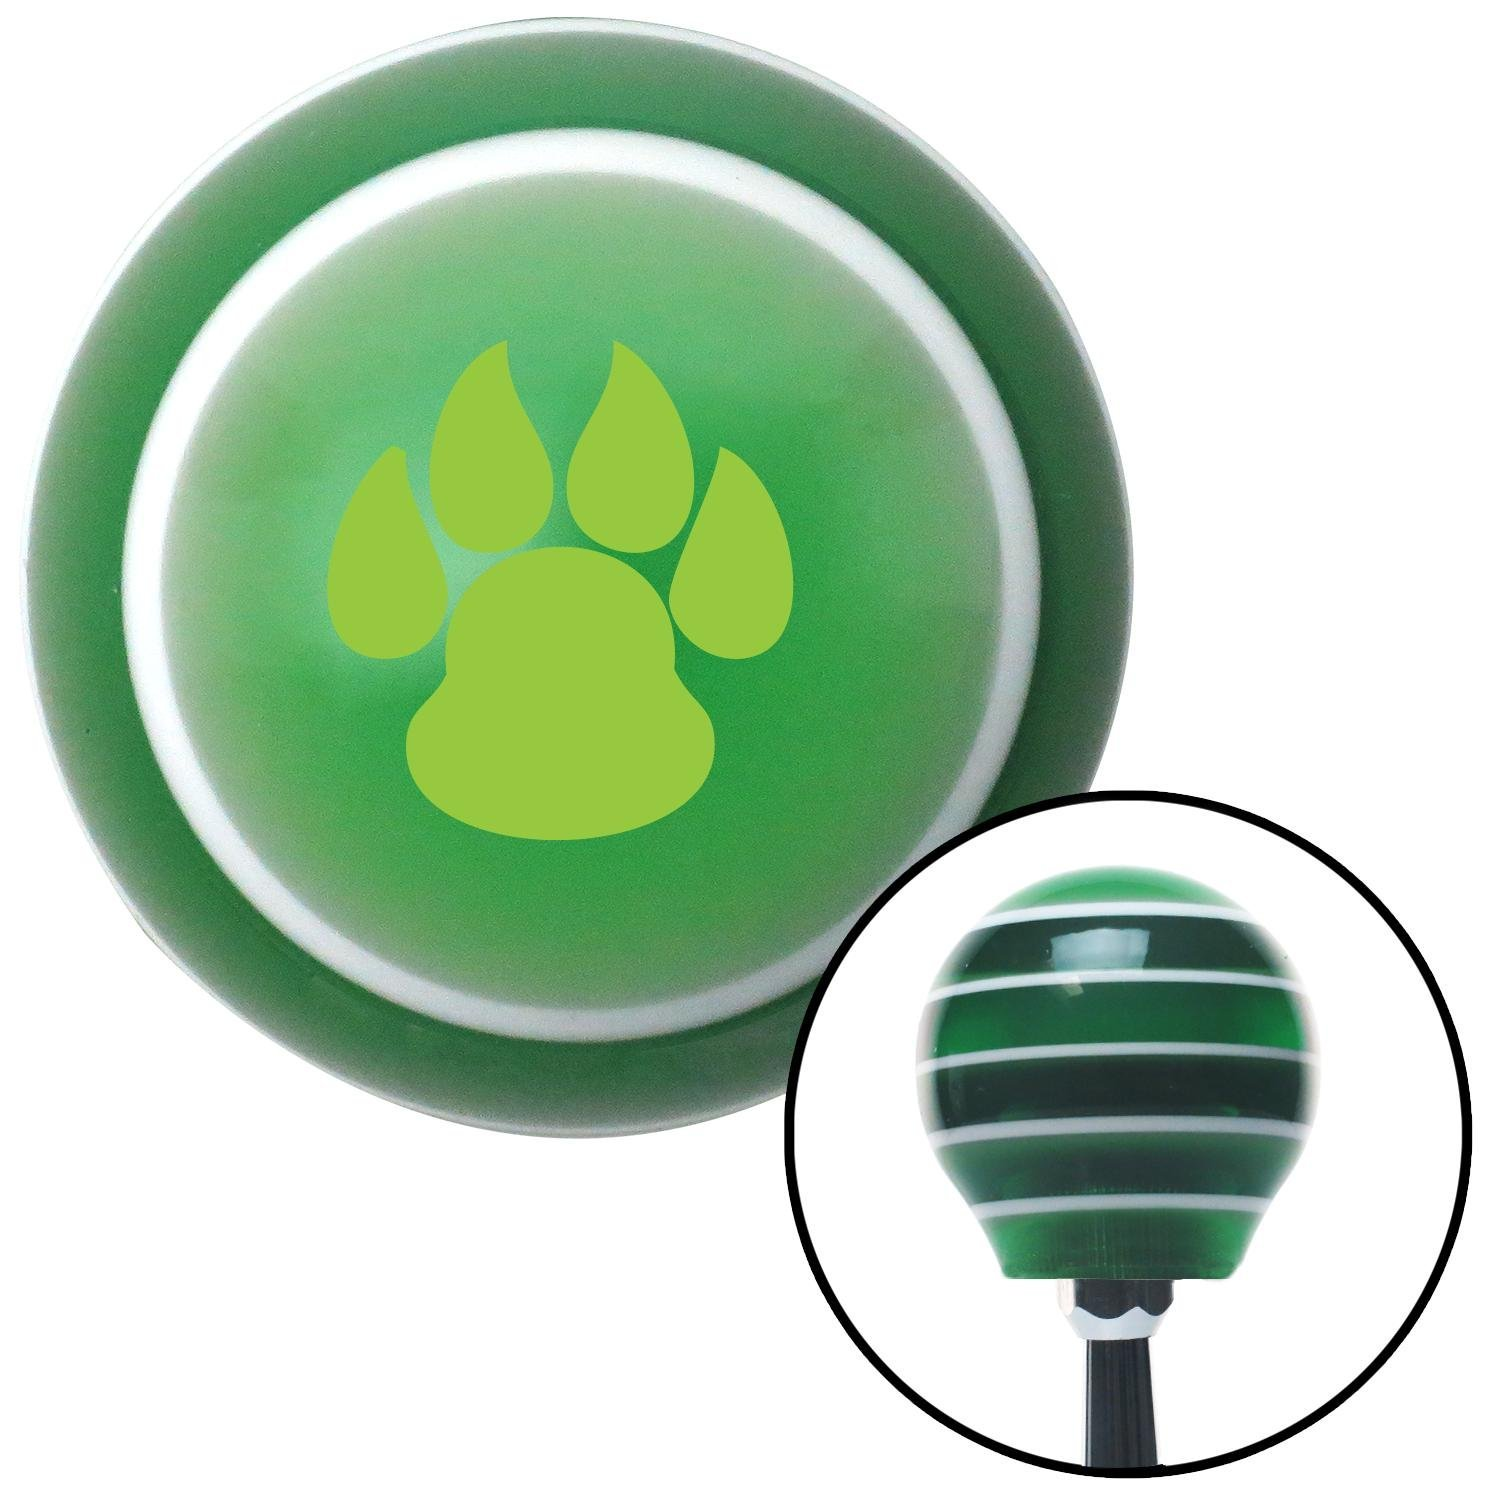 Green Pawprint Sharp American Shifter 121069 Green Stripe Shift Knob with M16 x 1.5 Insert